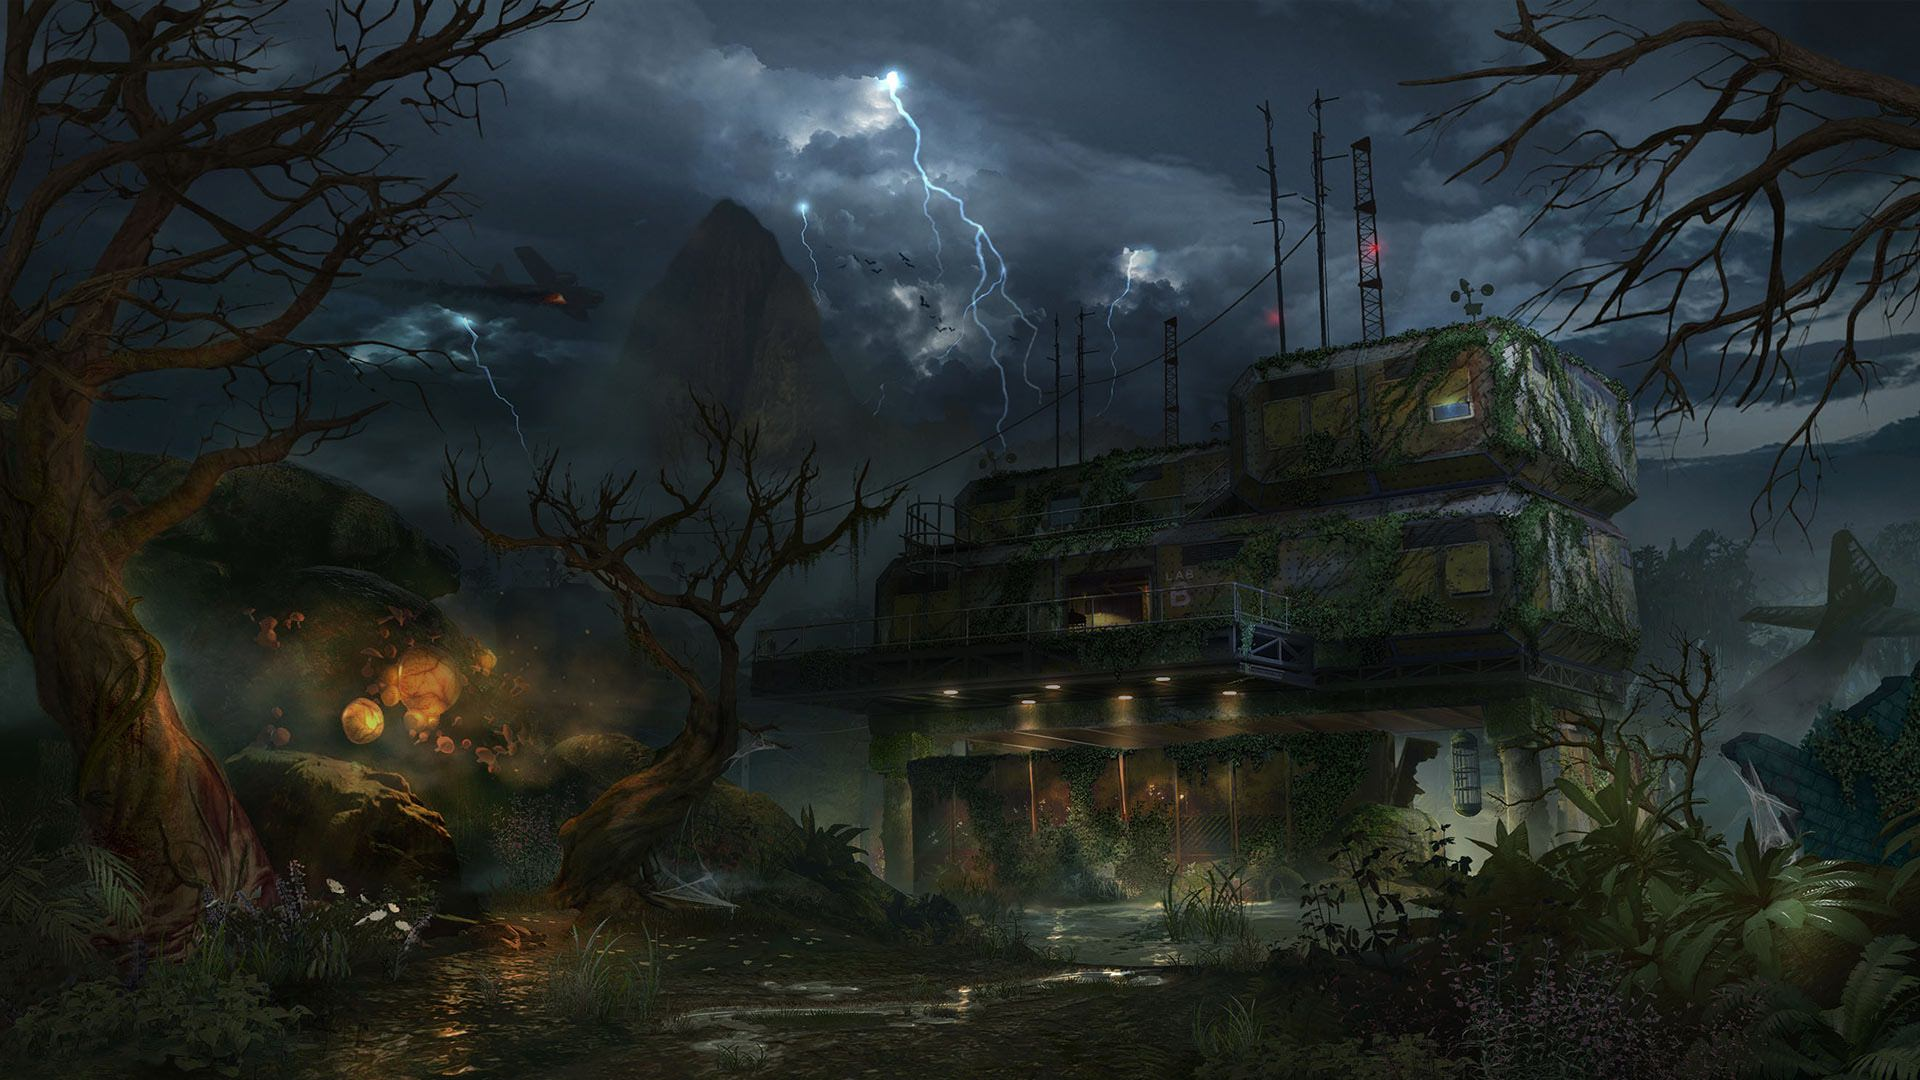 Call Of Duty Black Ops Eclipse DLC Pack Announced Available - All of us remastered bo3 zombies maps